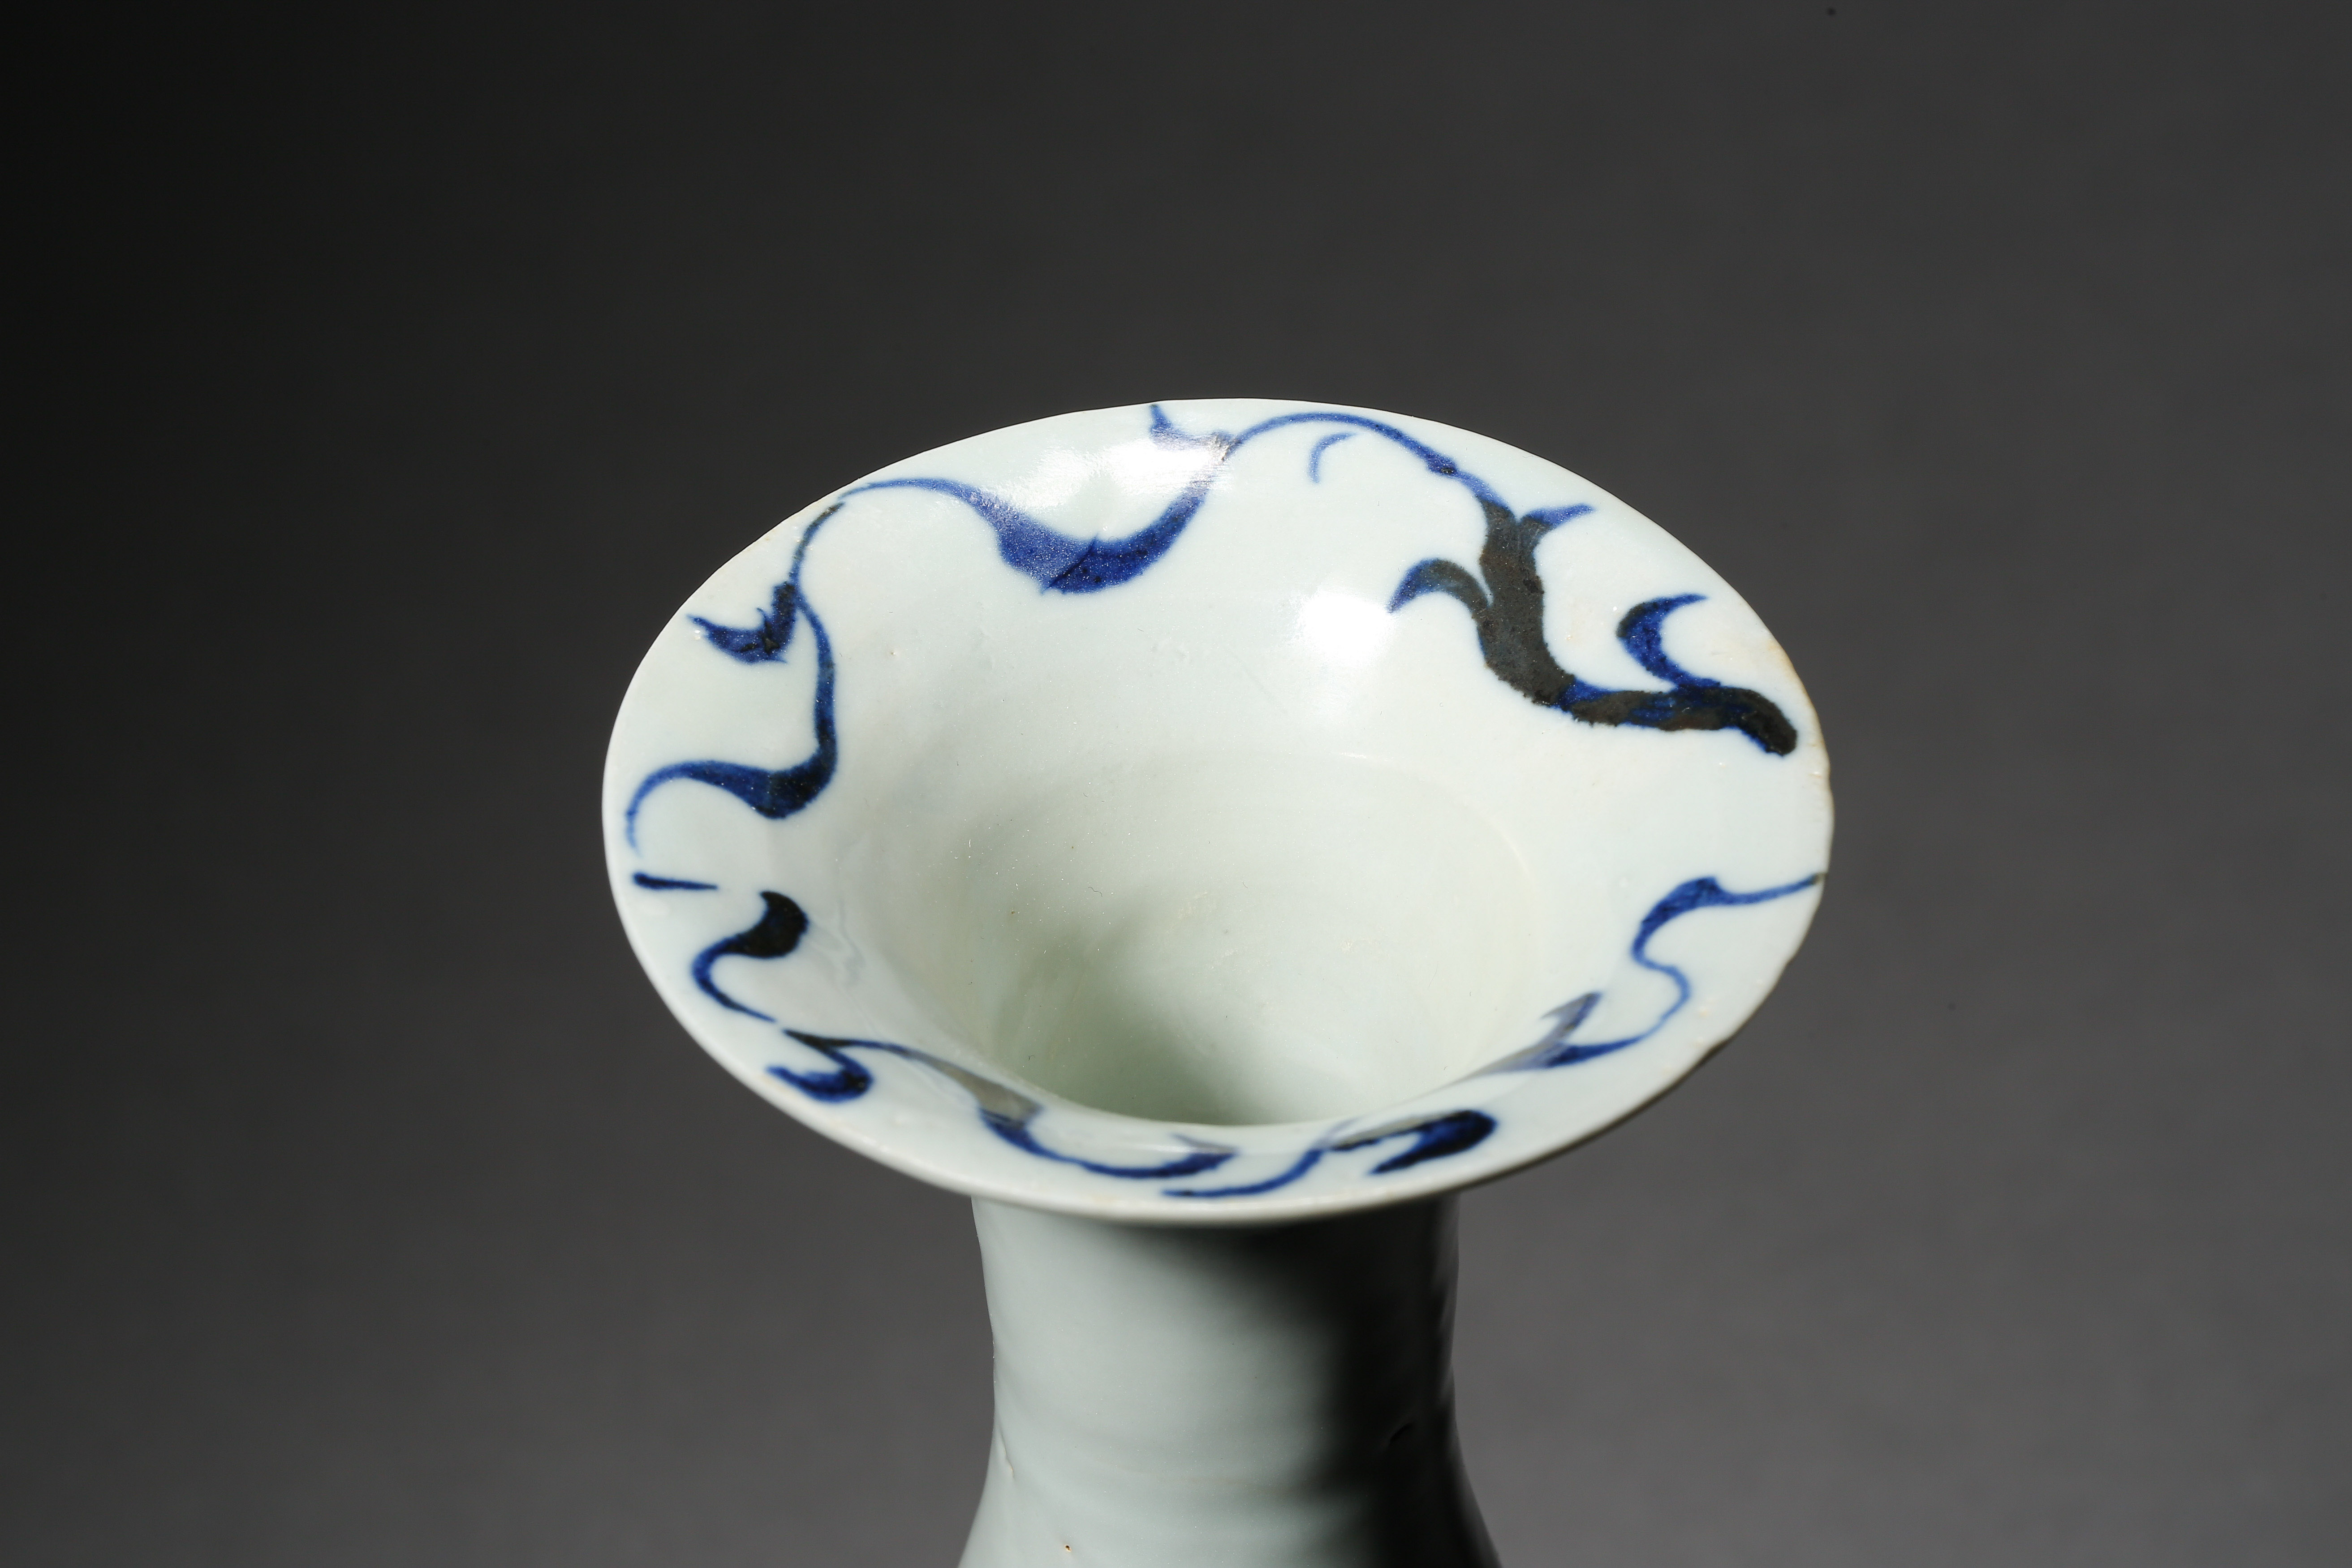 BLUE AND WHITE DRAGON PATTERN VASE, YUAN DYNASTY, CHINA - Image 6 of 8